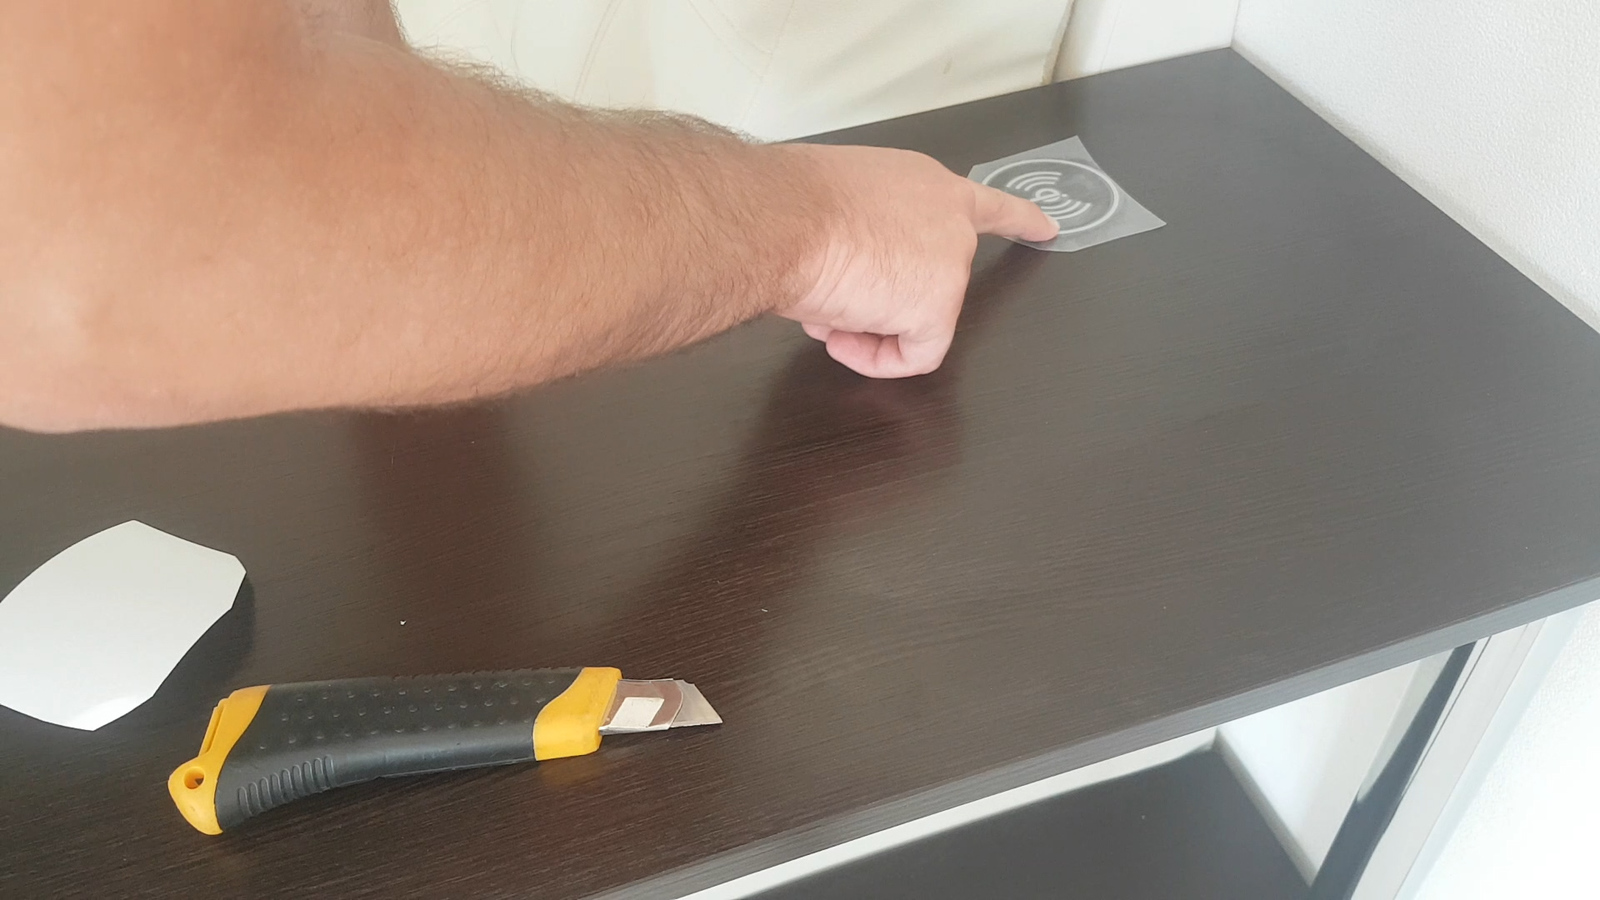 Wireless charging in the furniture with their own hands can be, deepening, painted, sides, grooves, stickers, assistance, done, fee, processing, coil, facial, make, just to, face, thickness, mill, hand, sticker